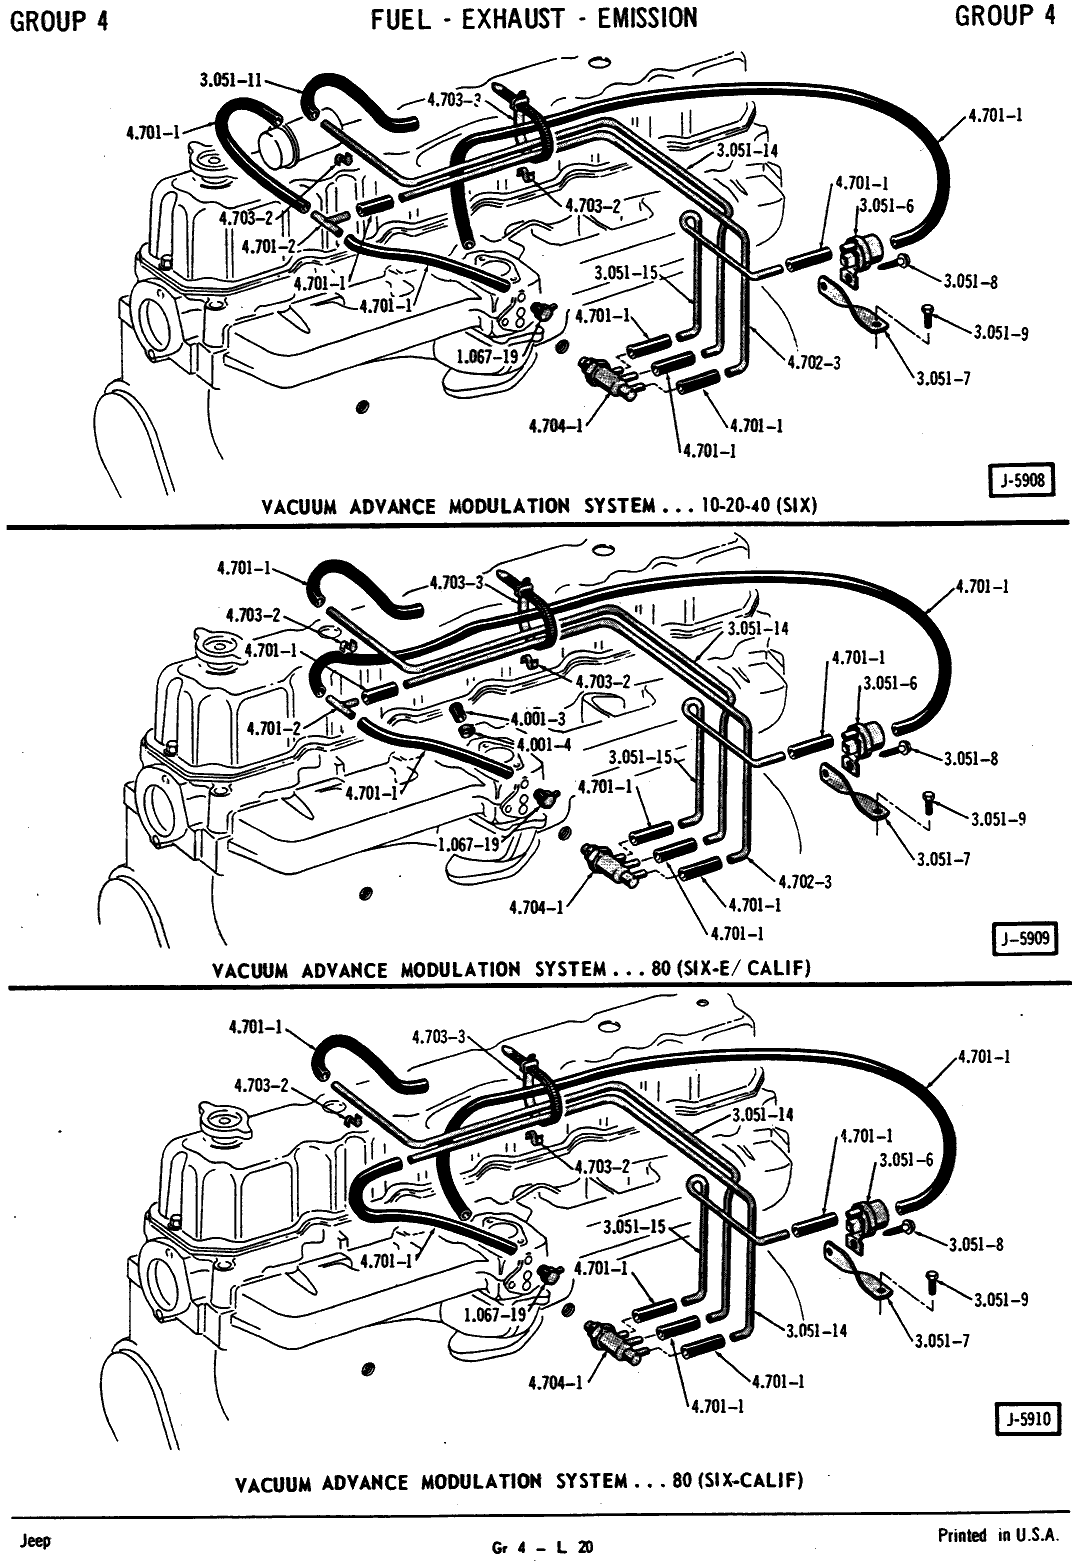 DIAGRAM] Jeep Cj7 Vacuum Diagram FULL Version HD Quality Vacuum Diagram -  DIAGRAMASESPECIALES.PLU-SAINT-MORILLON.FRdiagramasespeciales.plu-saint-morillon.fr